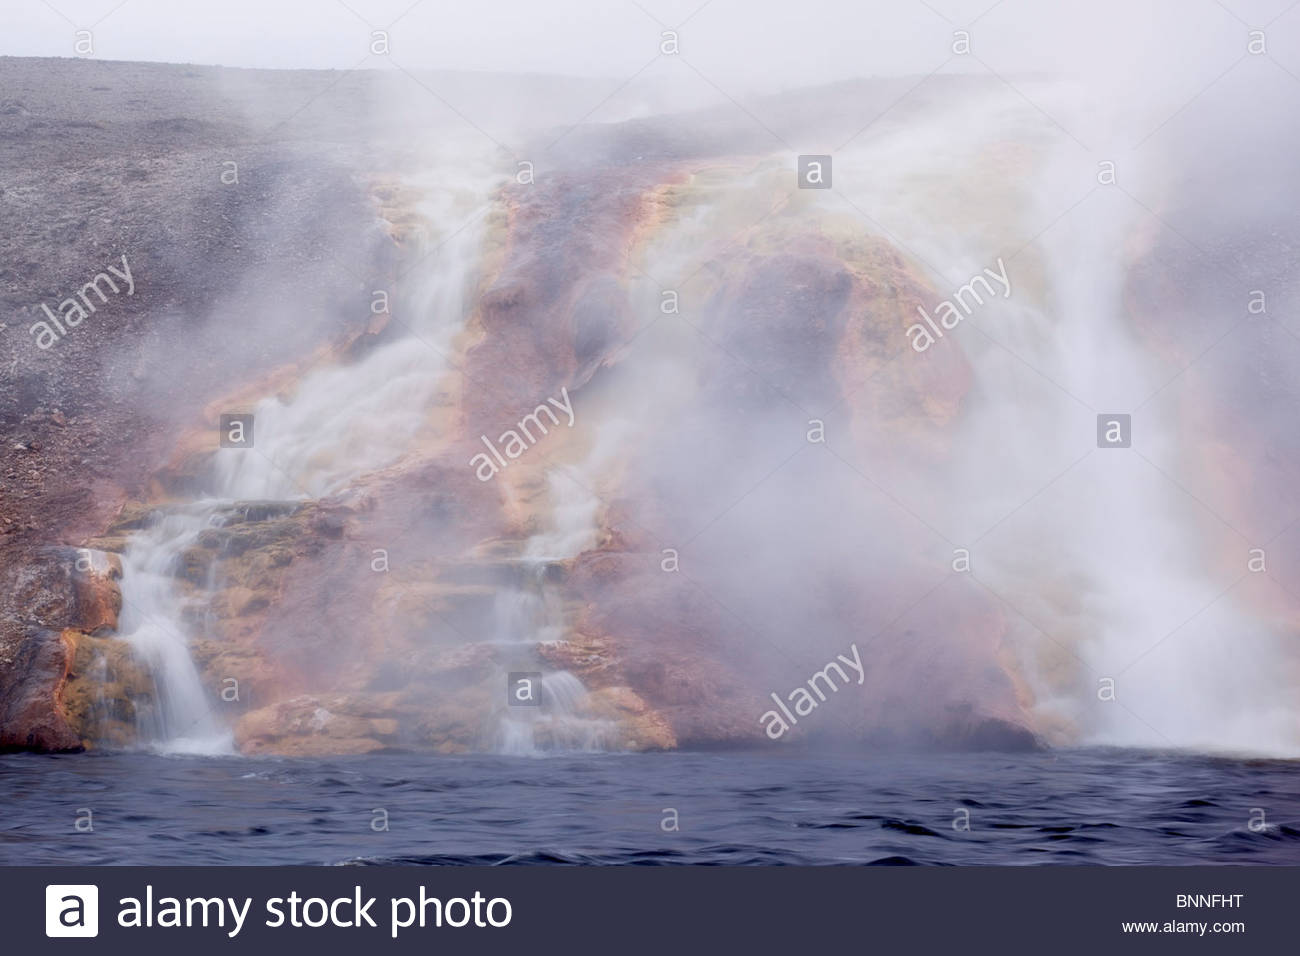 Excelsior Geyser Runoff into Firehole River at Midway Geyser Basin, Yellowstone National Park, Wyoming - Stock Image